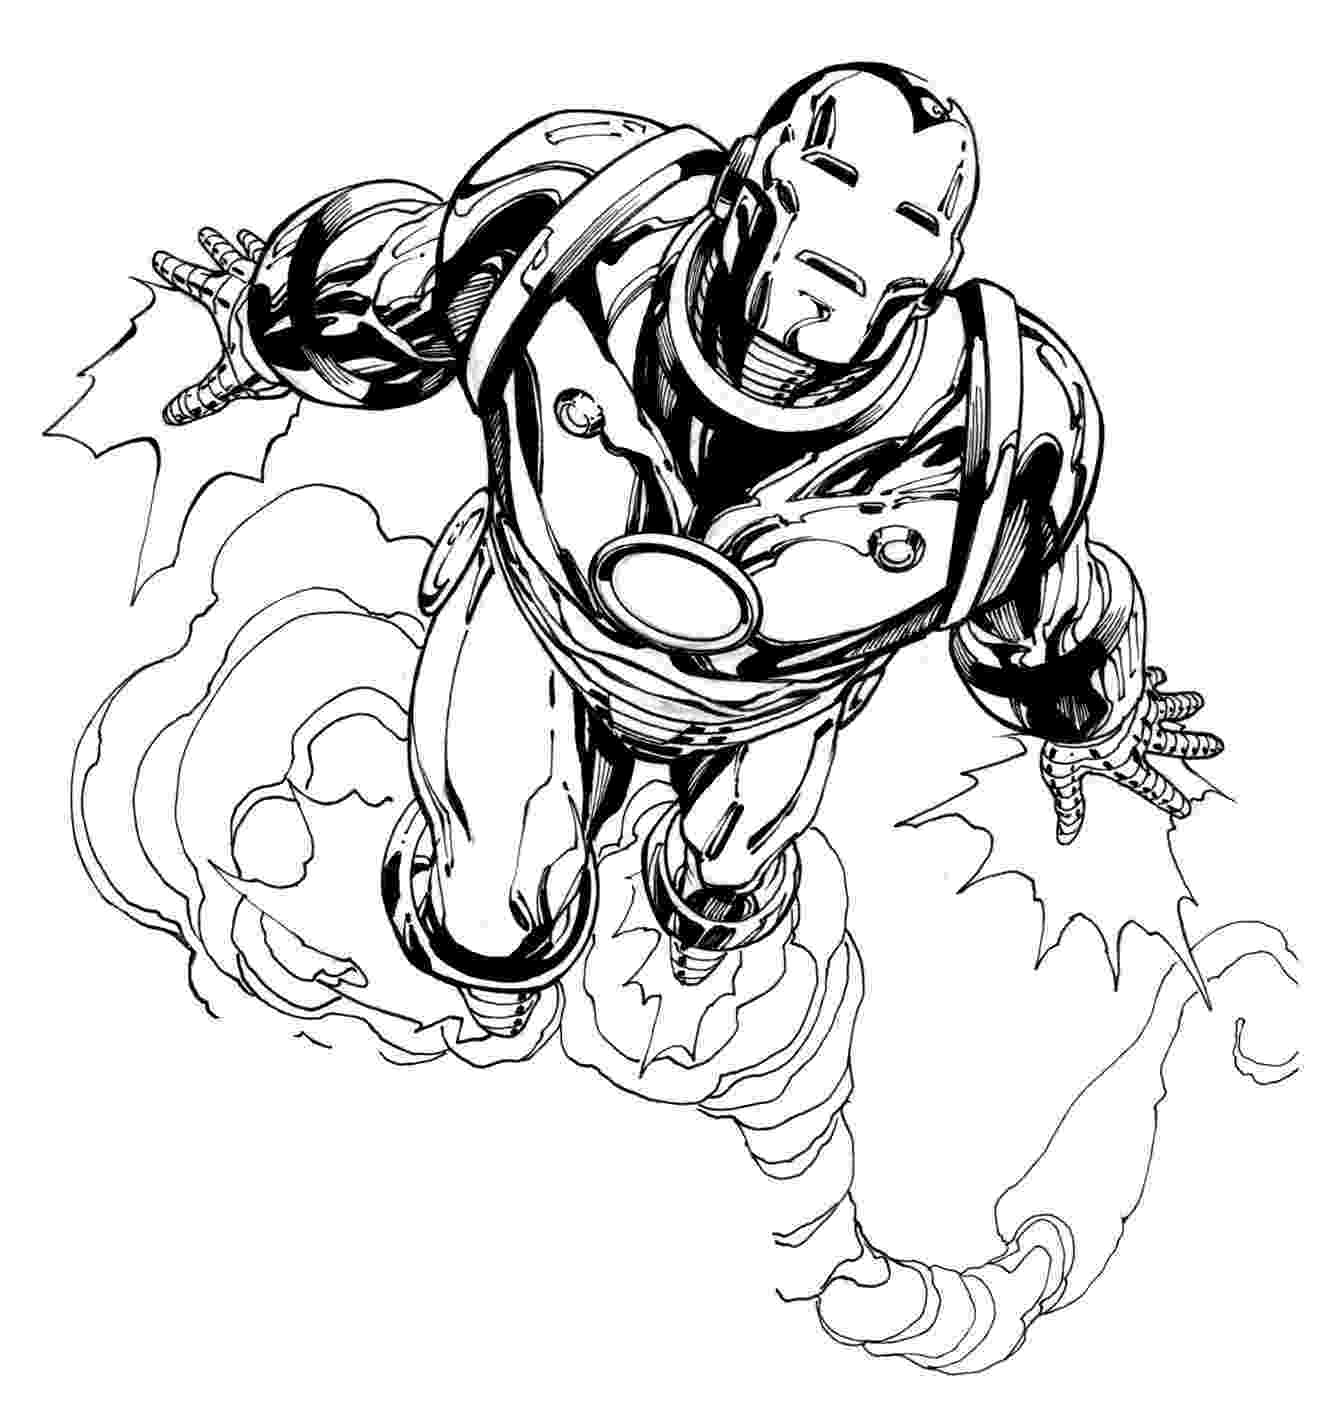 ironman pictures to print ironman coloring pages to download and print for free to pictures print ironman